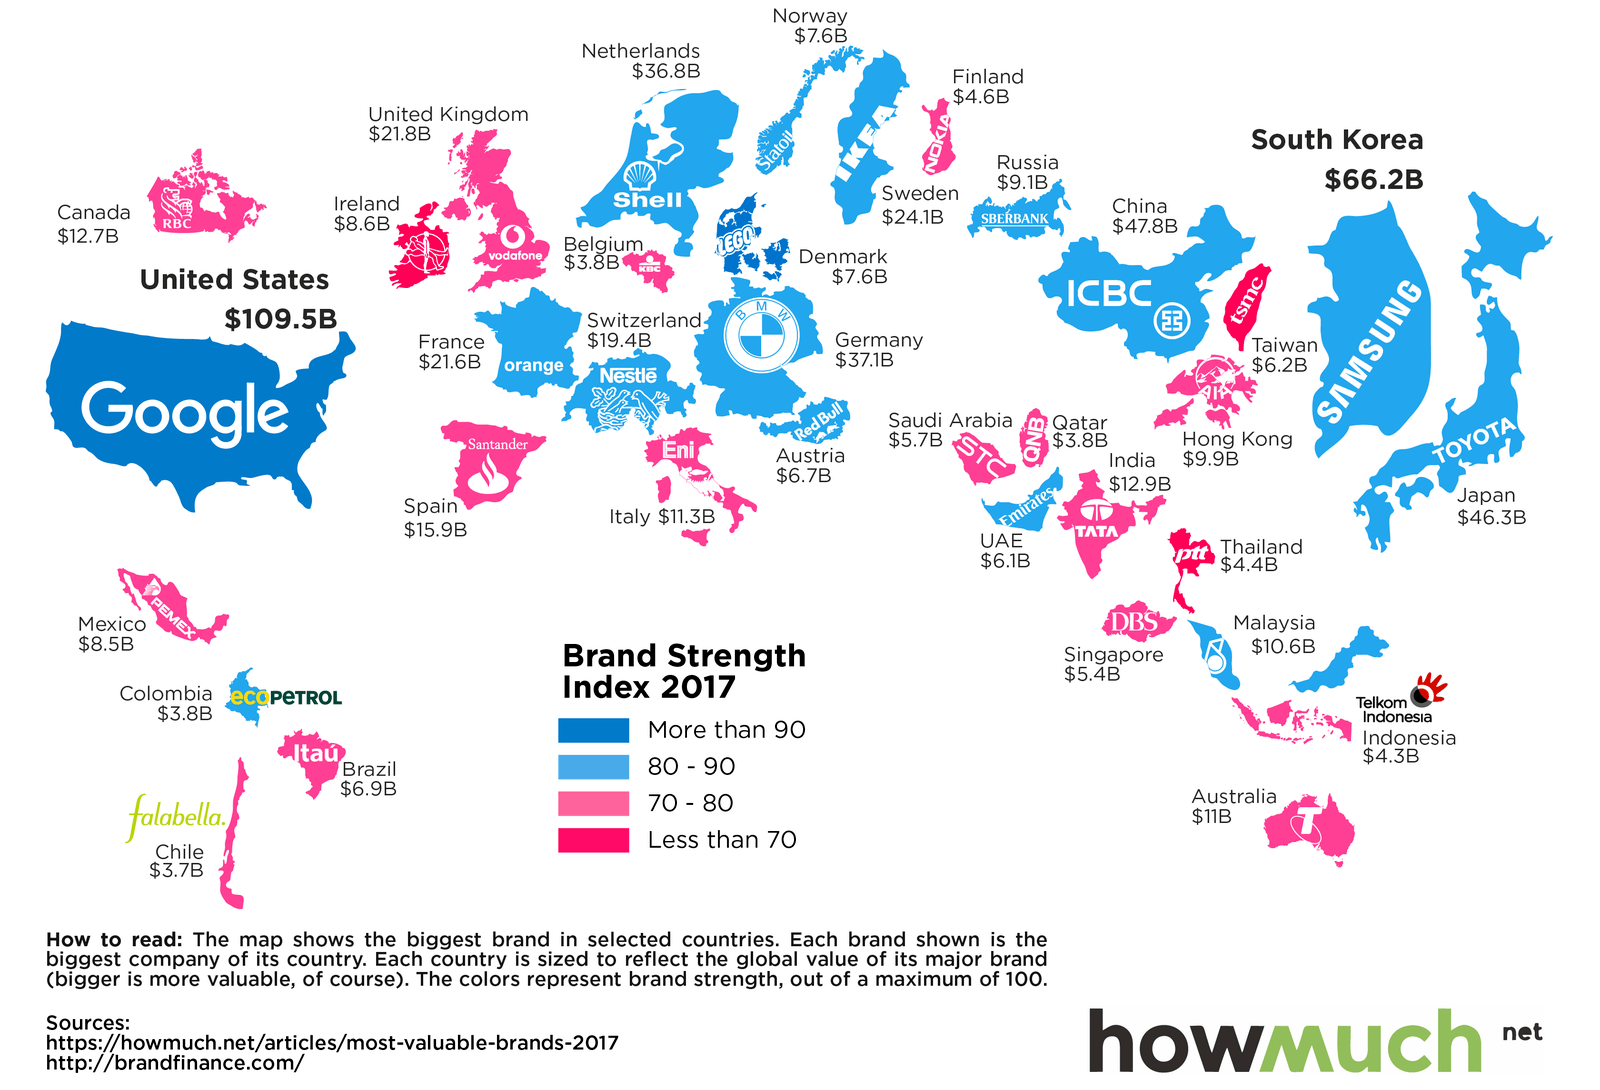 This Map Shows the Most Valuable Brand for Each Country